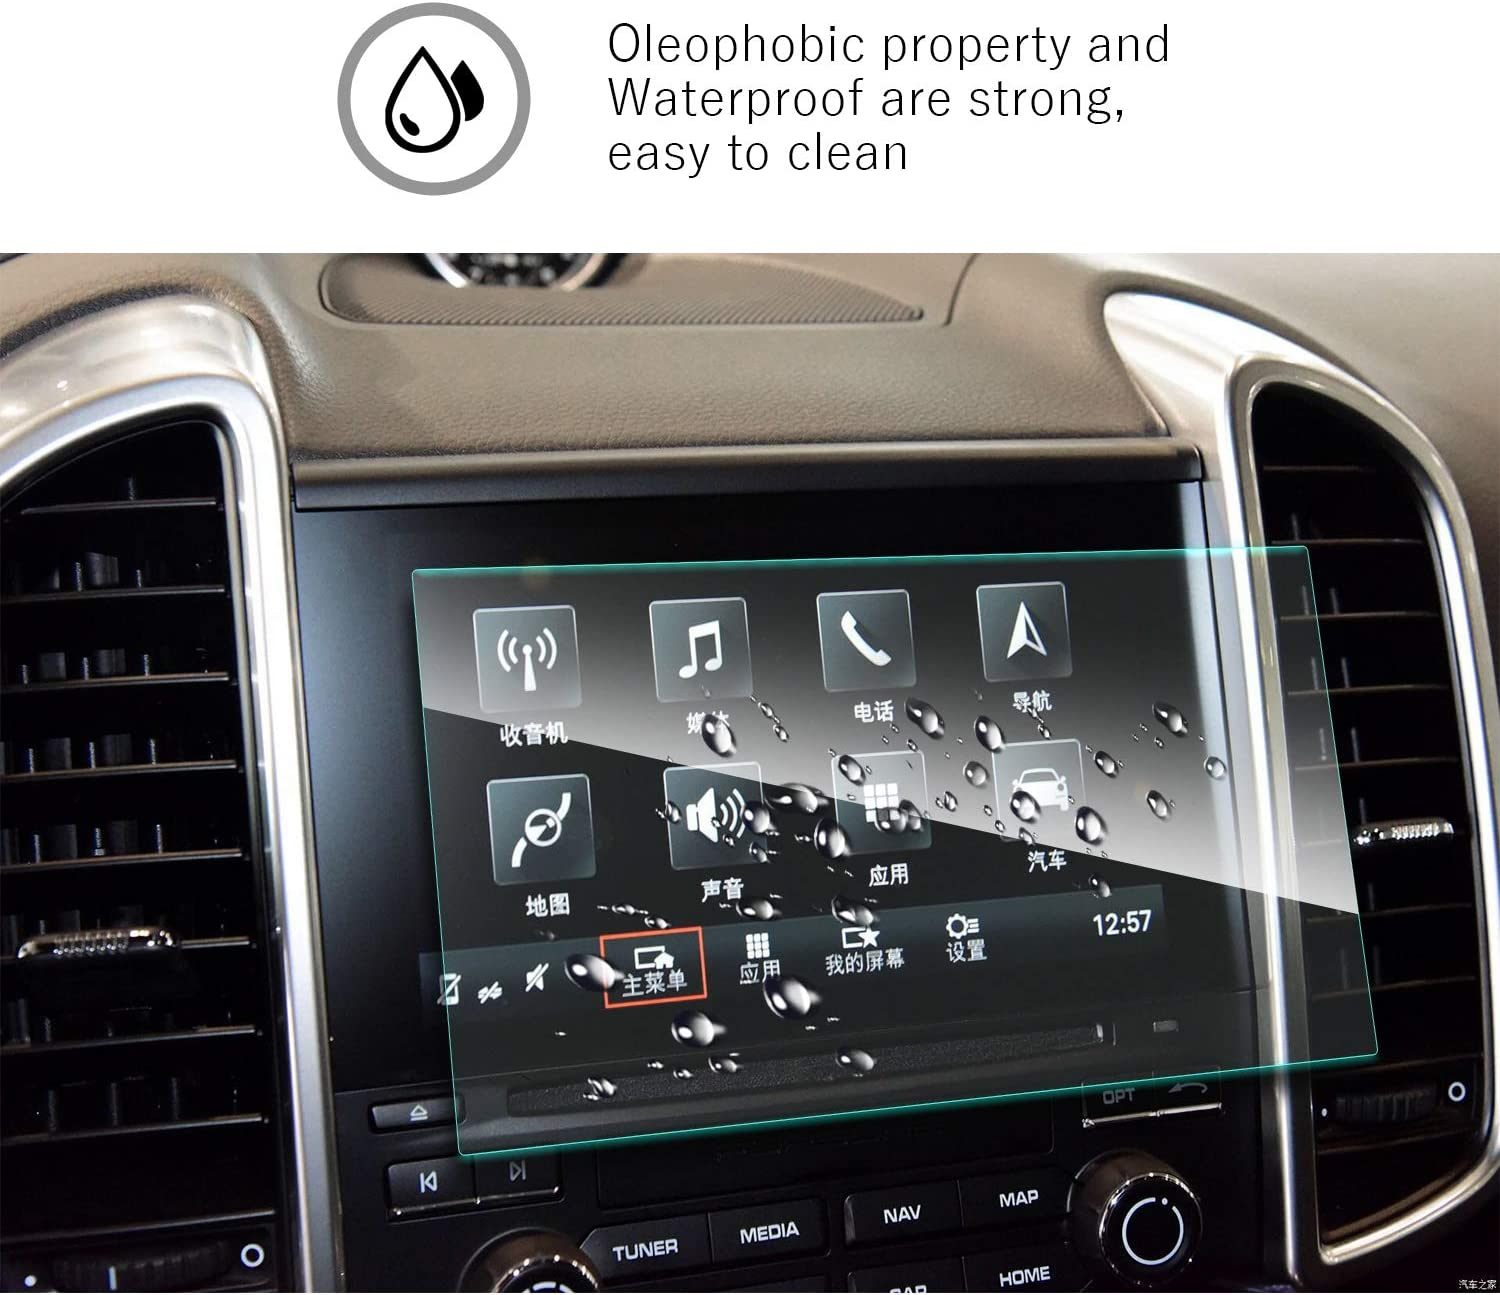 Car Navigation Display Glass Protective Film Anti-Scratch High Clarity 7-Inch YEE PIN Screen Protector for Porsche Cayenne//Porsche Macan 2015 2016 Center Control Touch Screen